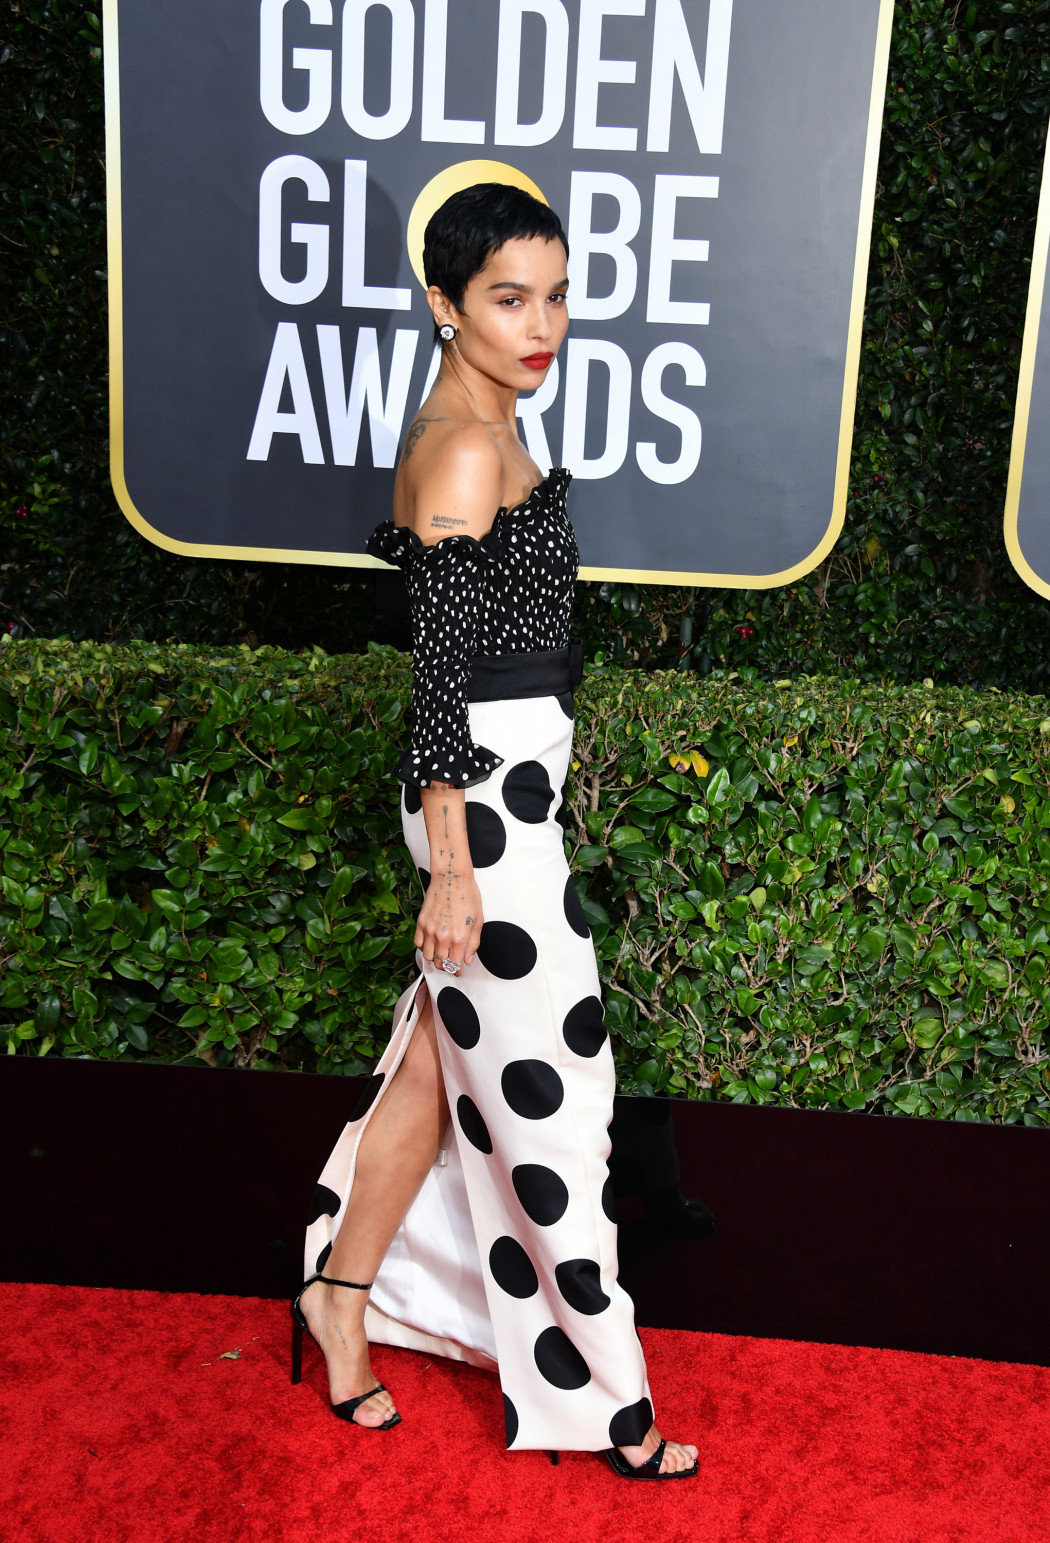 Golden Globes 2020 : les plus beaux looks du tapis rouge - 3